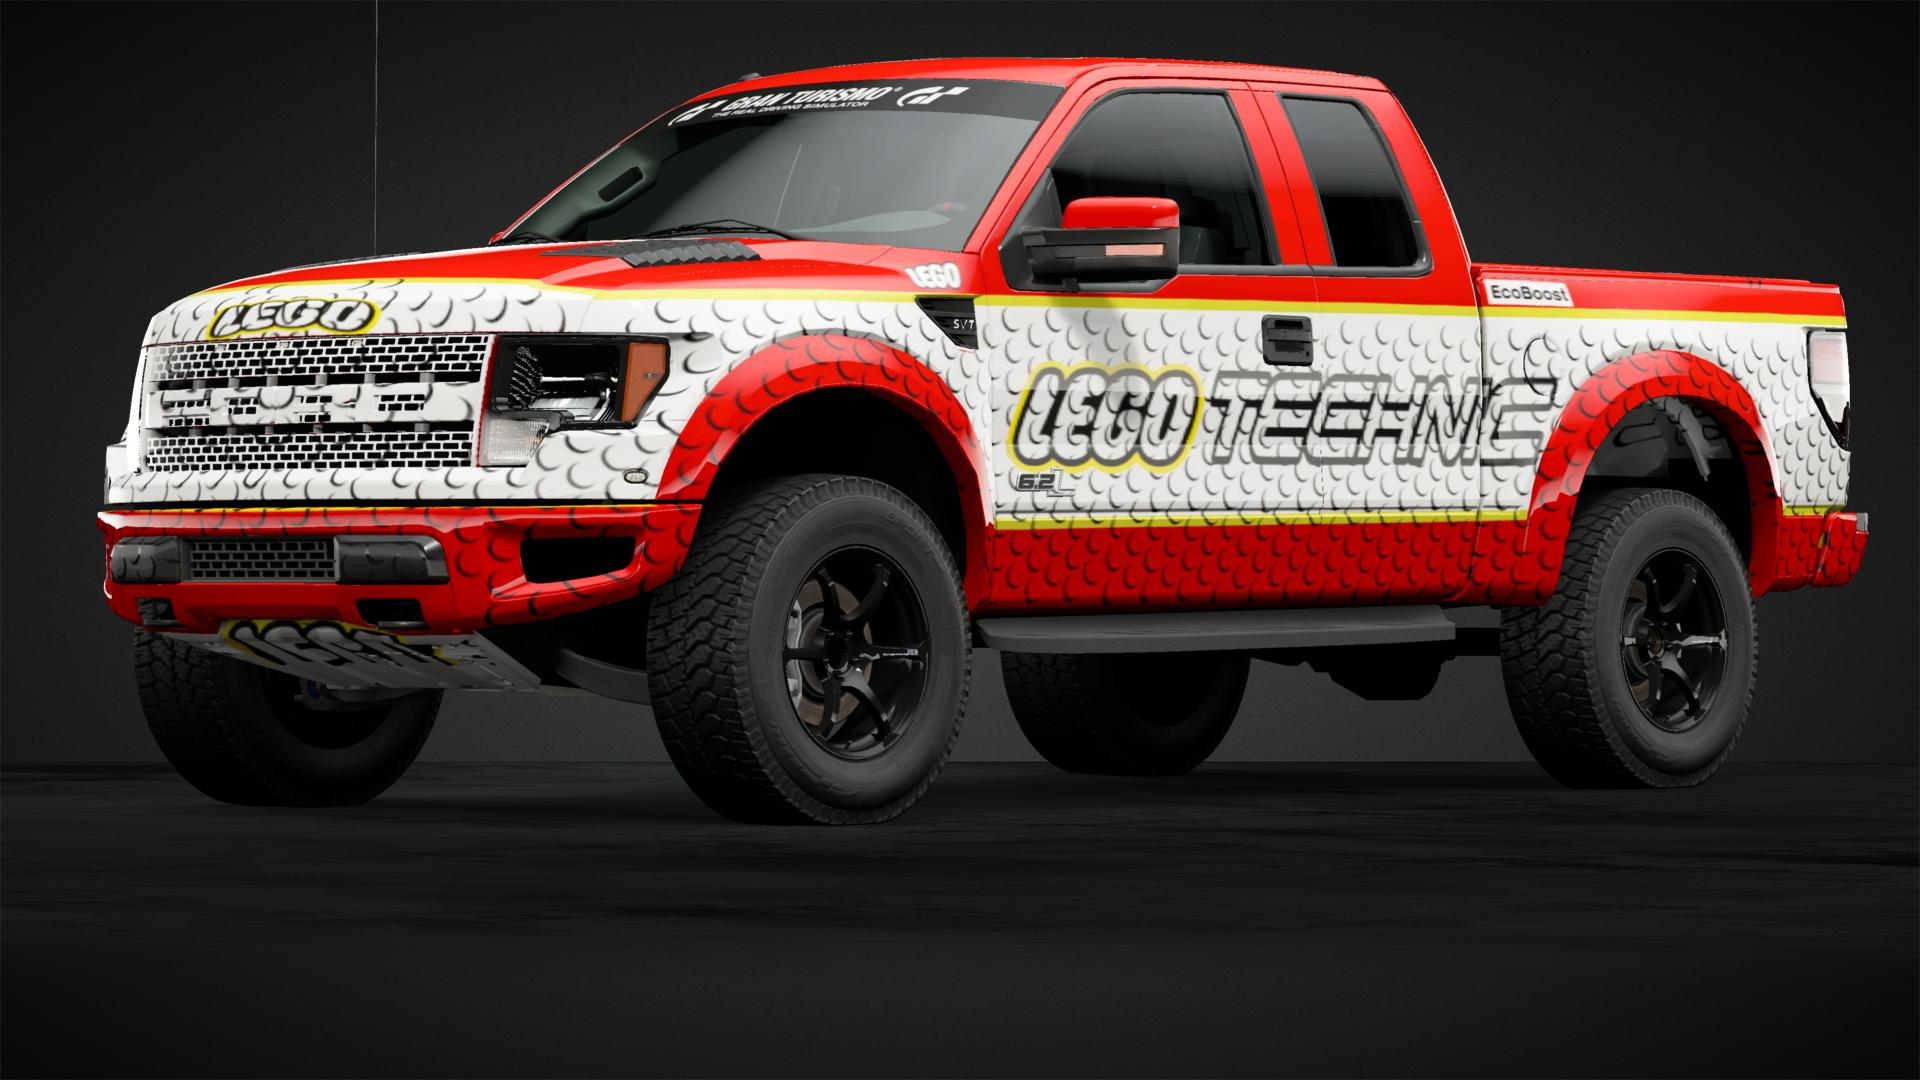 Lego Technic Ford Raptor Car Livery By Boerkejr Community Gran